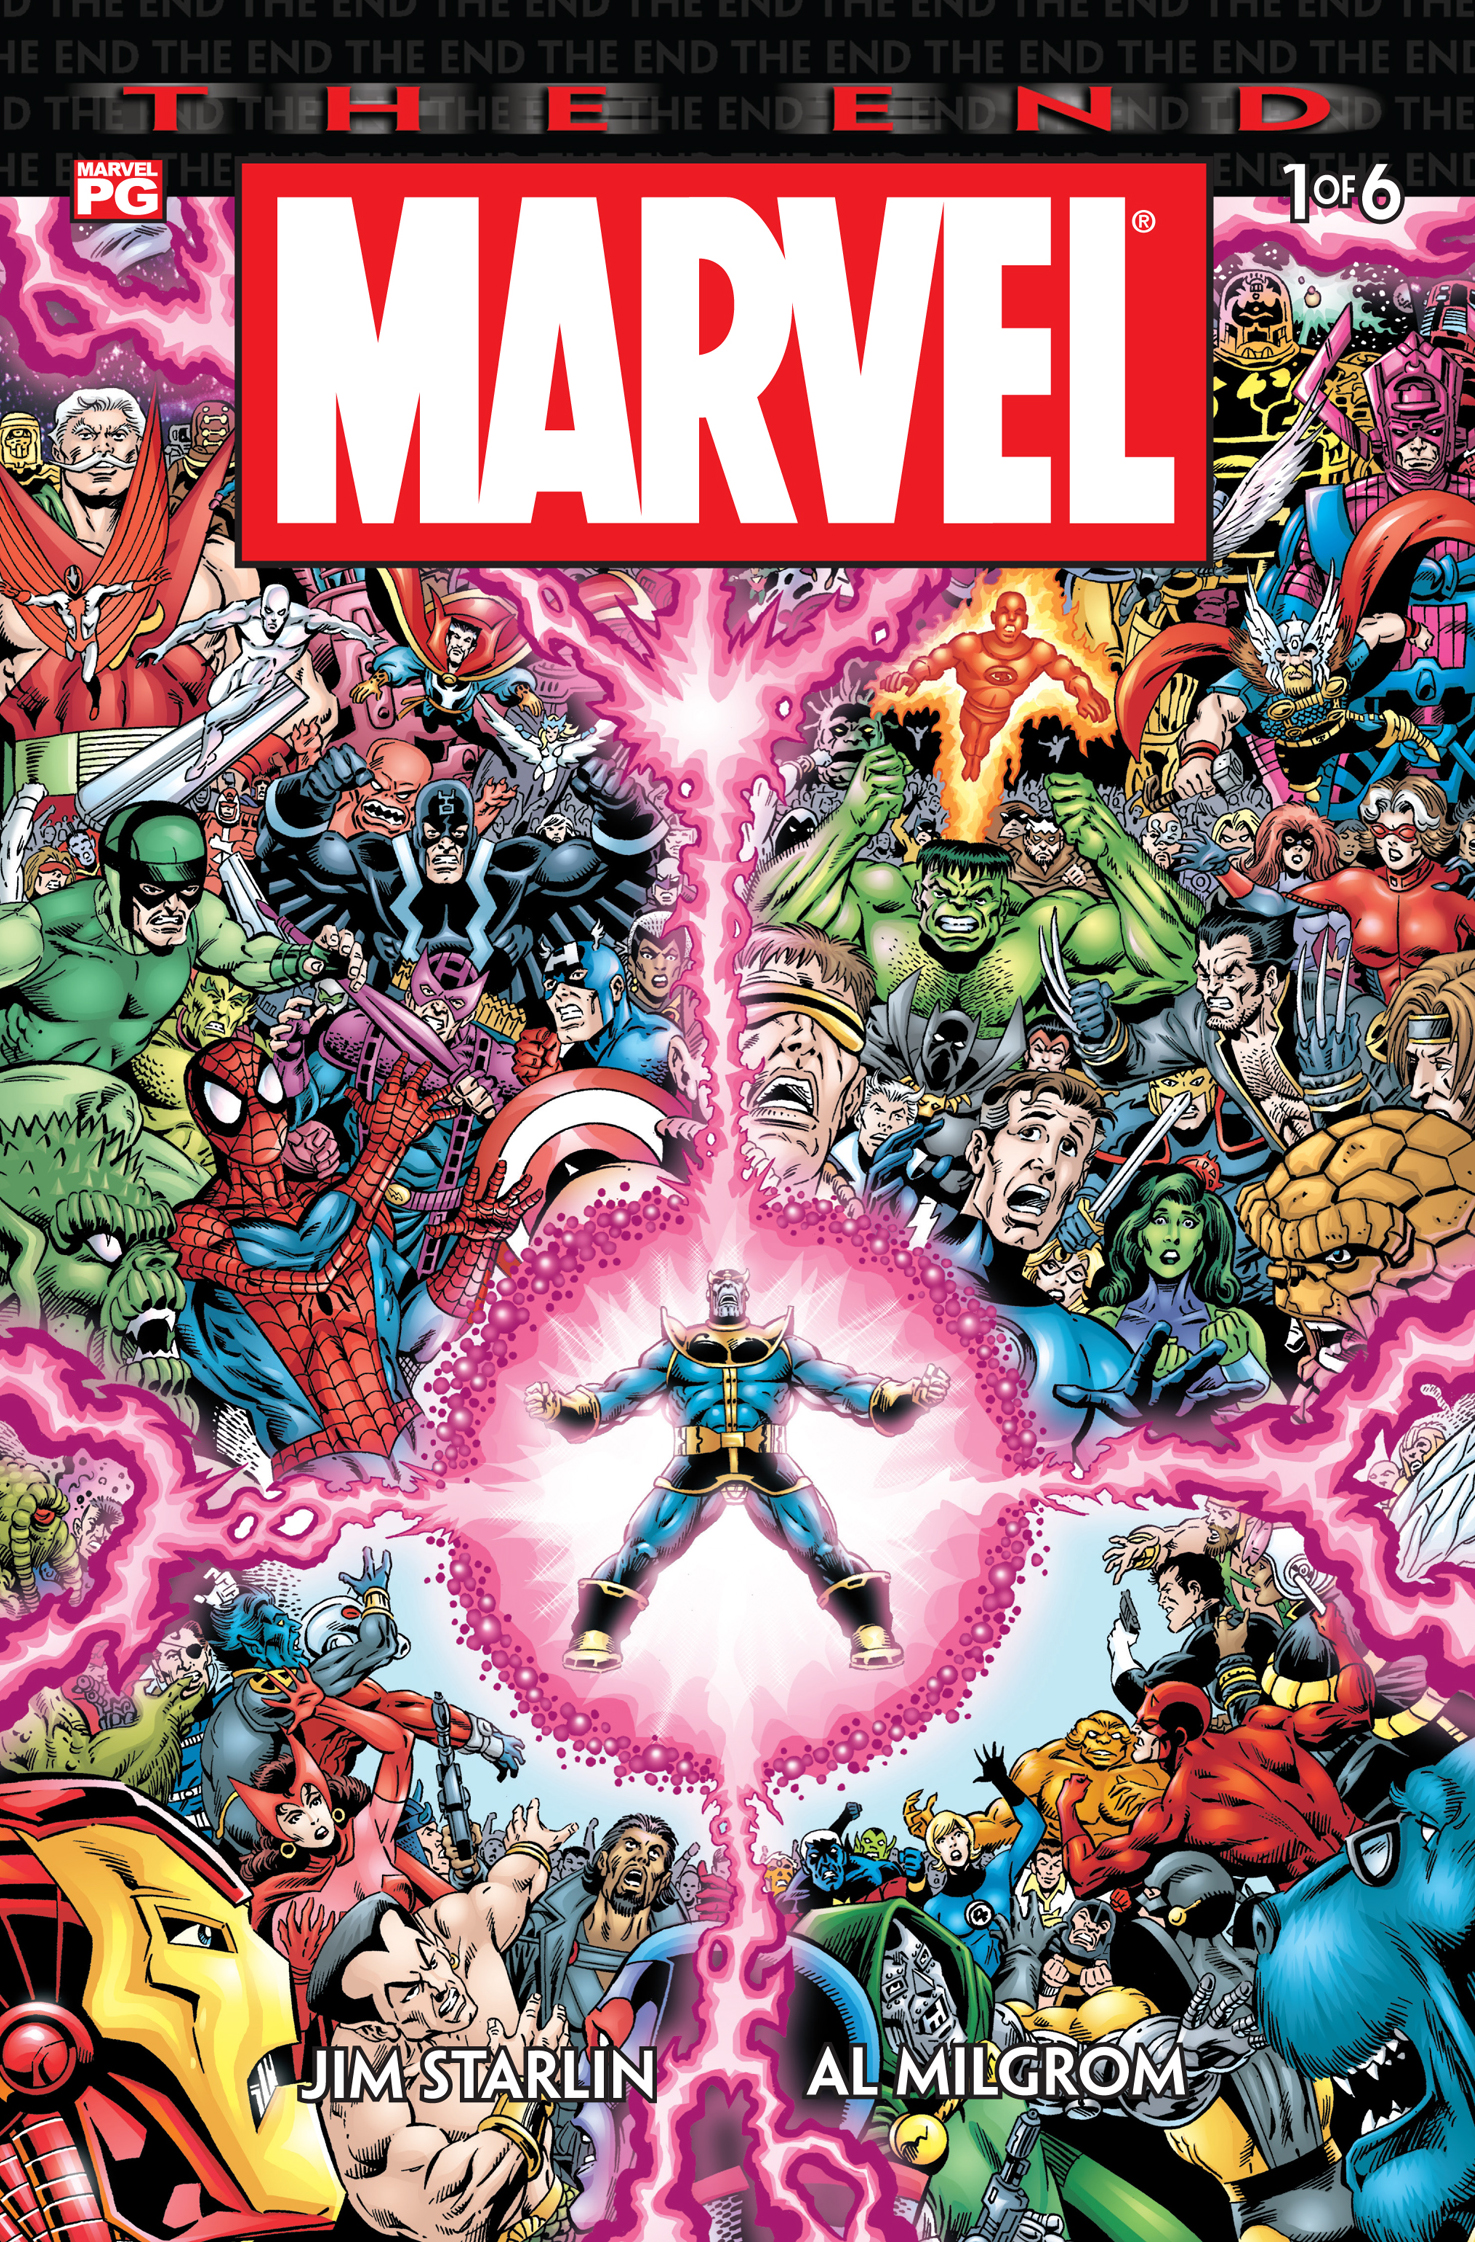 Marvel Universe: The End (2003) #1